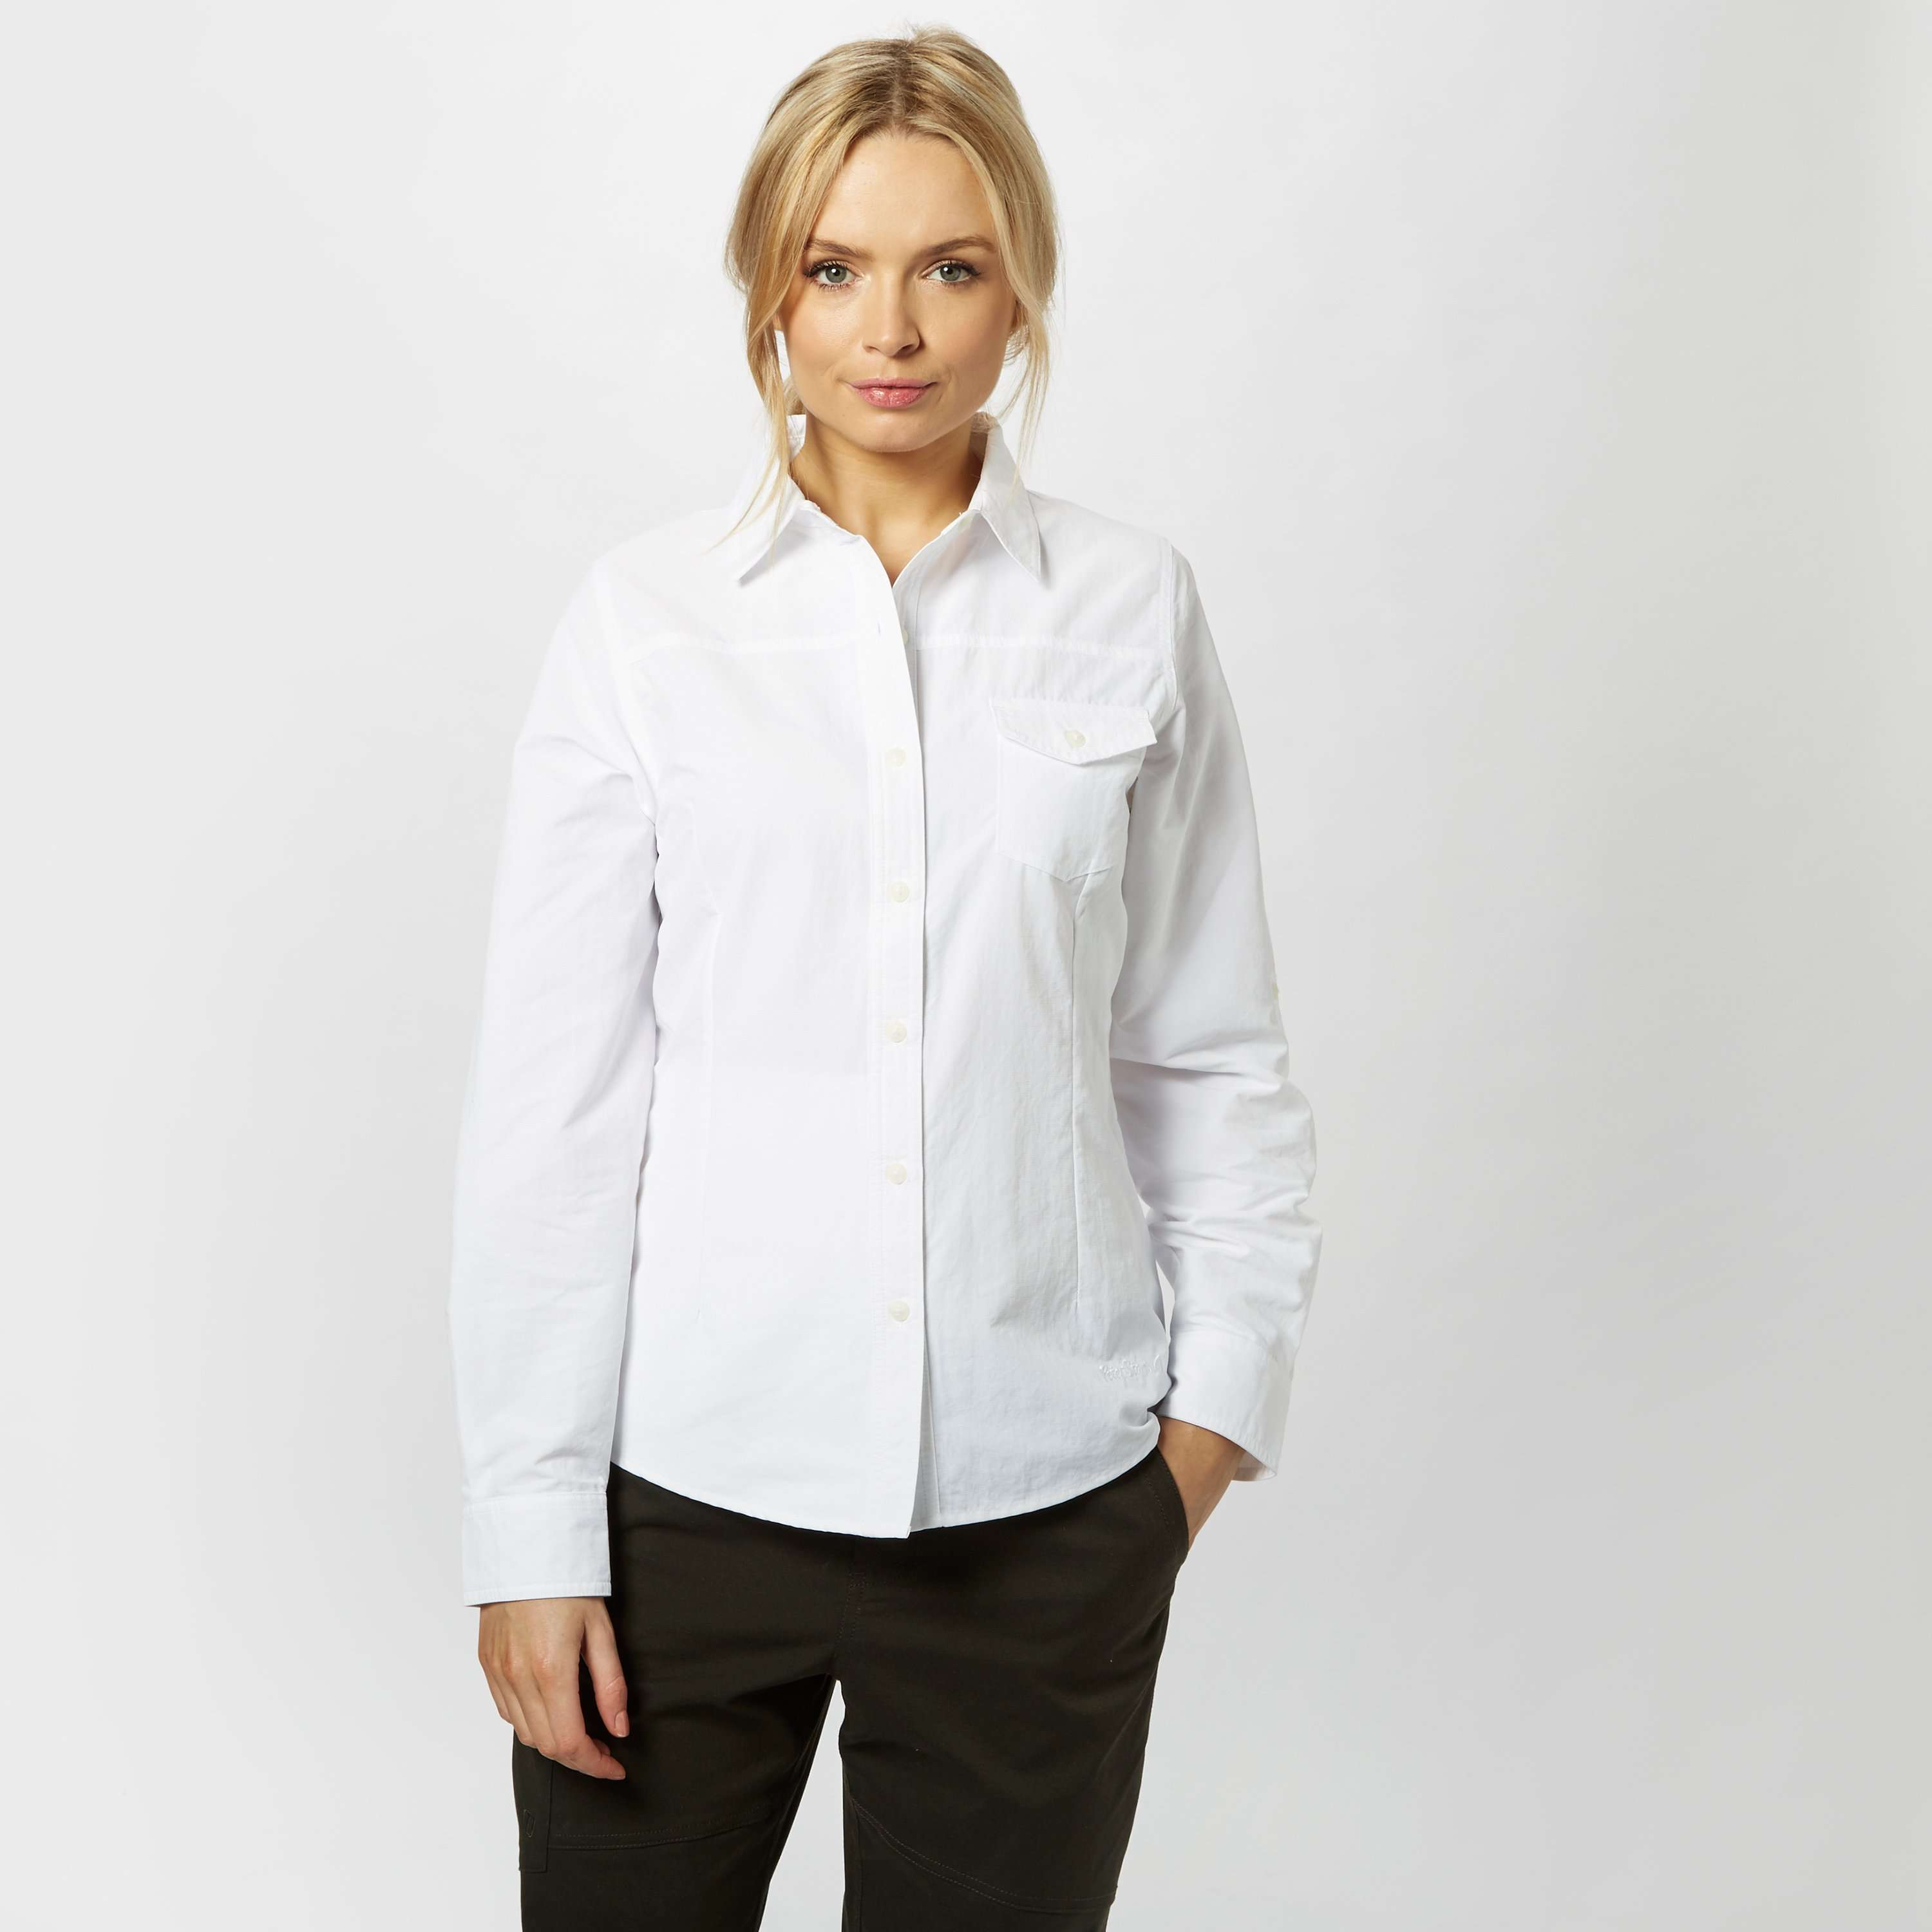 PETER STORM Women's Long Sleeve Travel Shirt